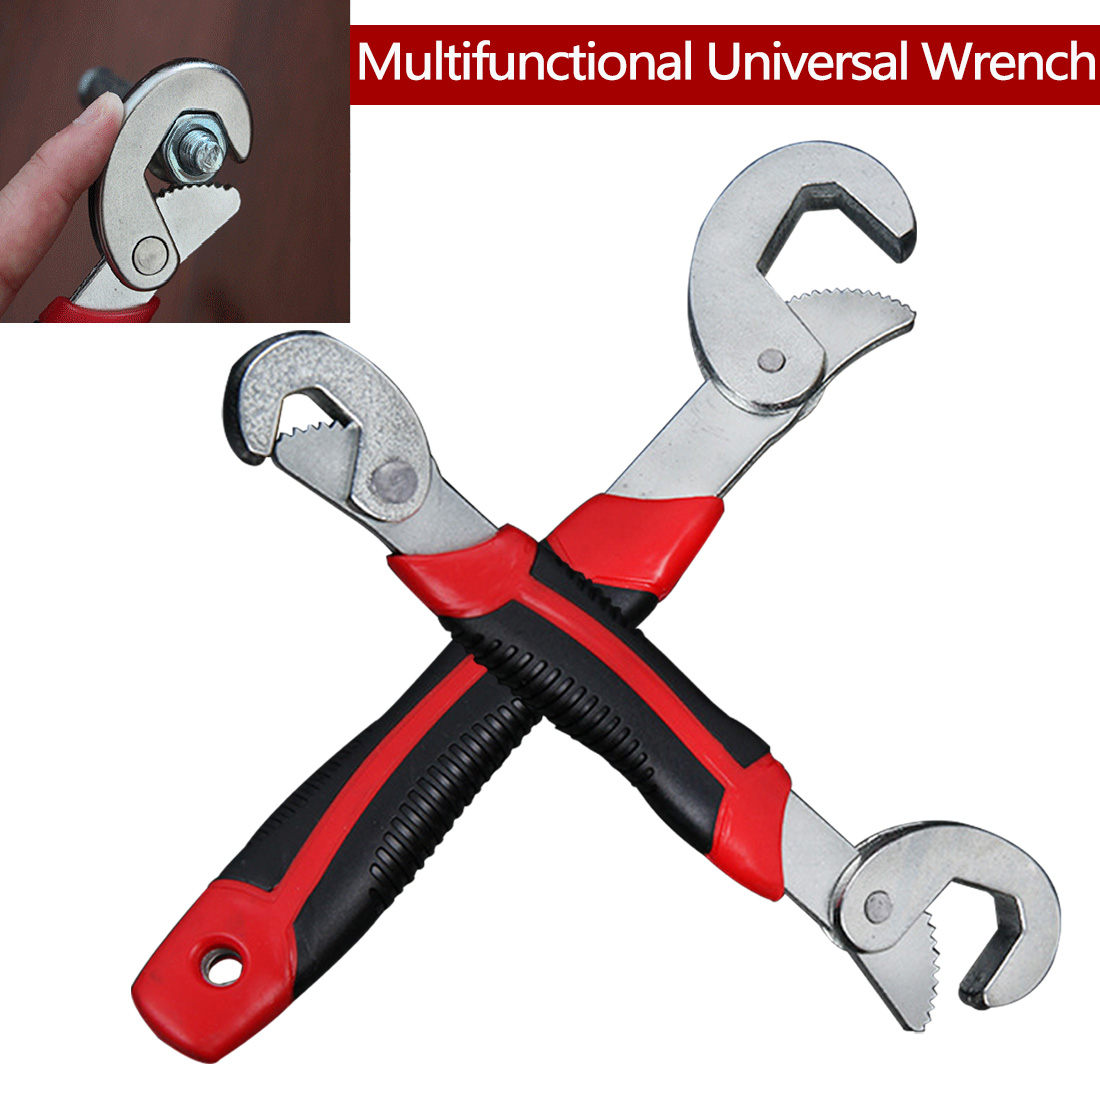 Hand tools Multi-Function Universal Wrench Set Snap and Grip Adjustable Wrench Set 9-32MM For Nuts and Bolts of 2 Sizes